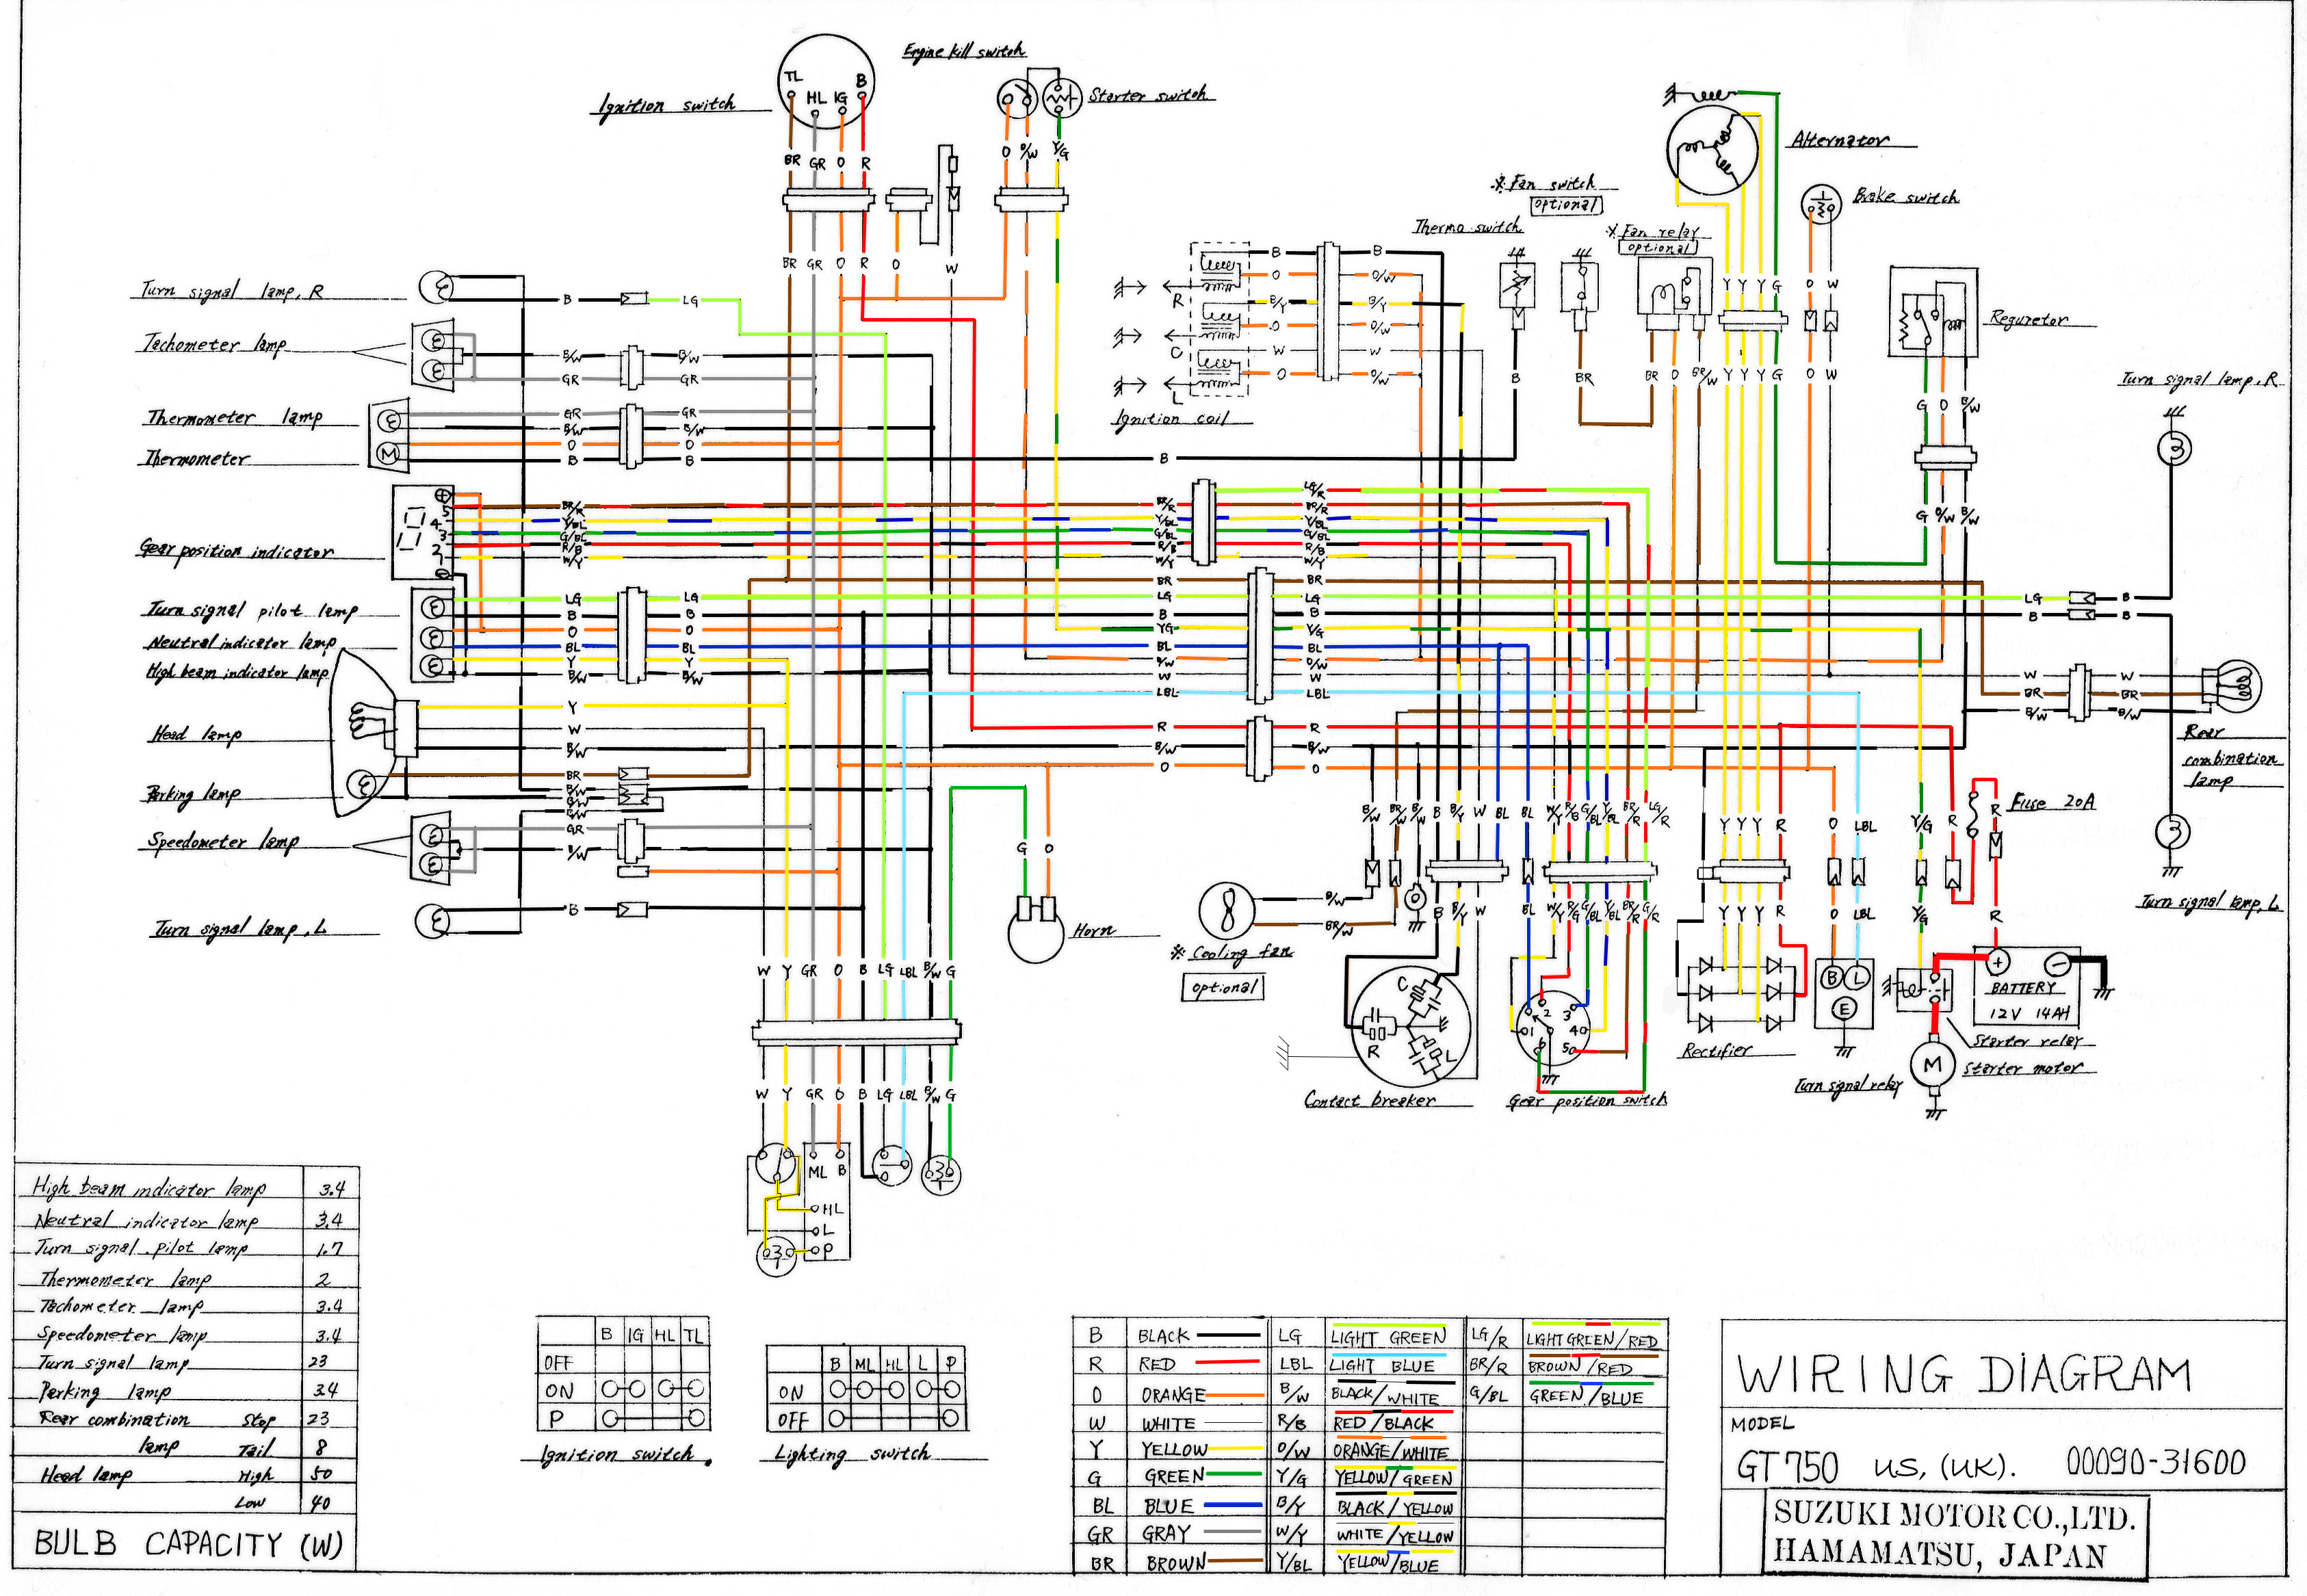 Suzuki Gt750 Wiring Diagram Wire Data Schema \u2022 RC51 Cluster Wiring  Diagram Wiring Diagram Honda Rc51